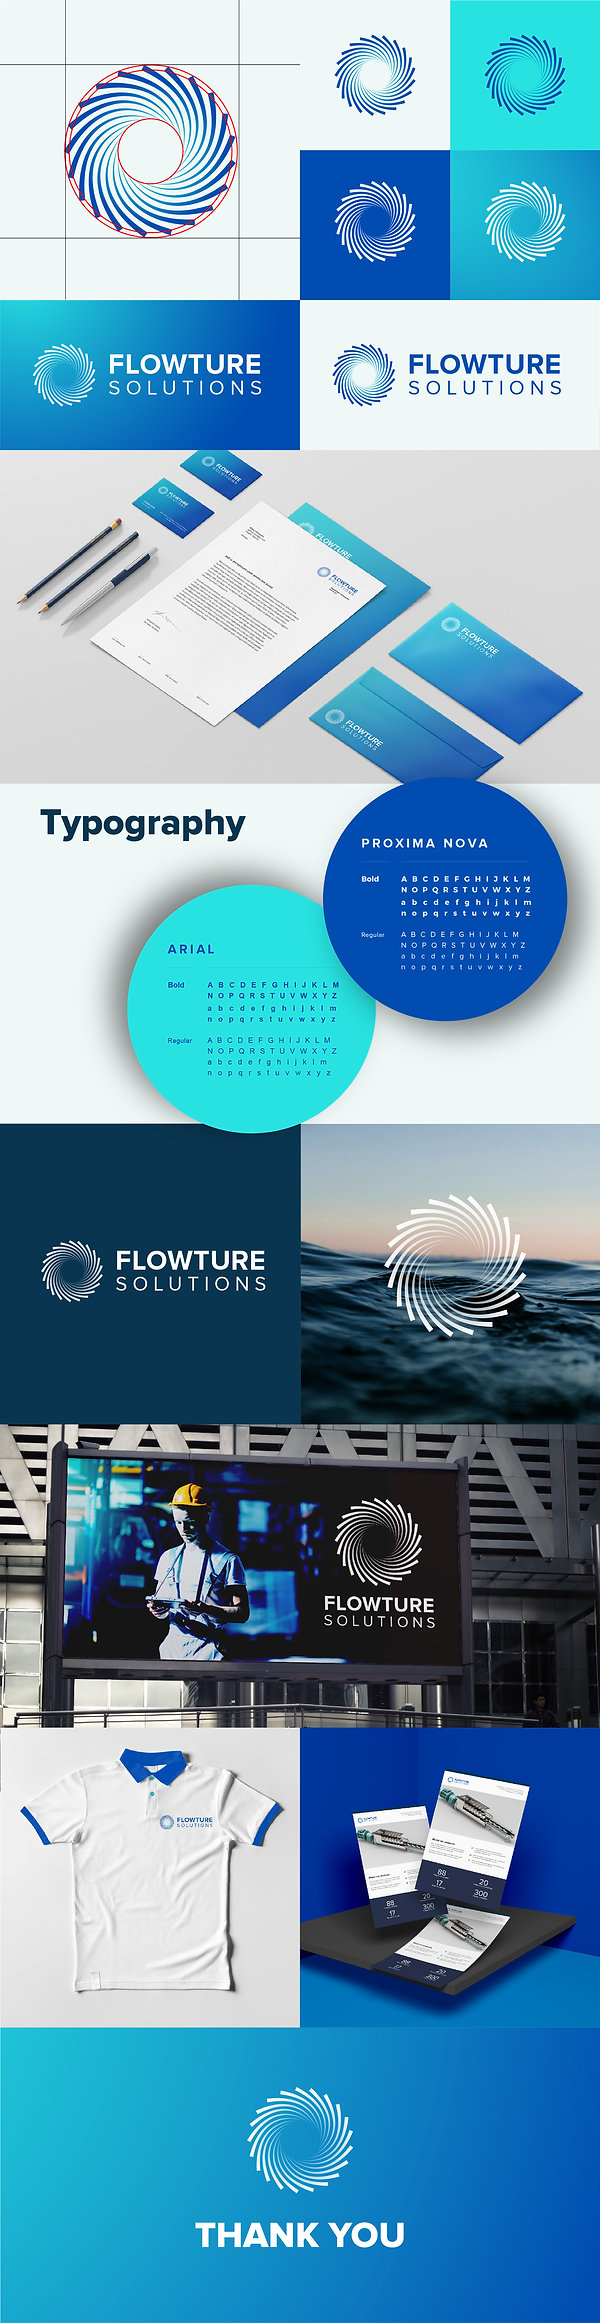 flowture_website presentation-01.jpg